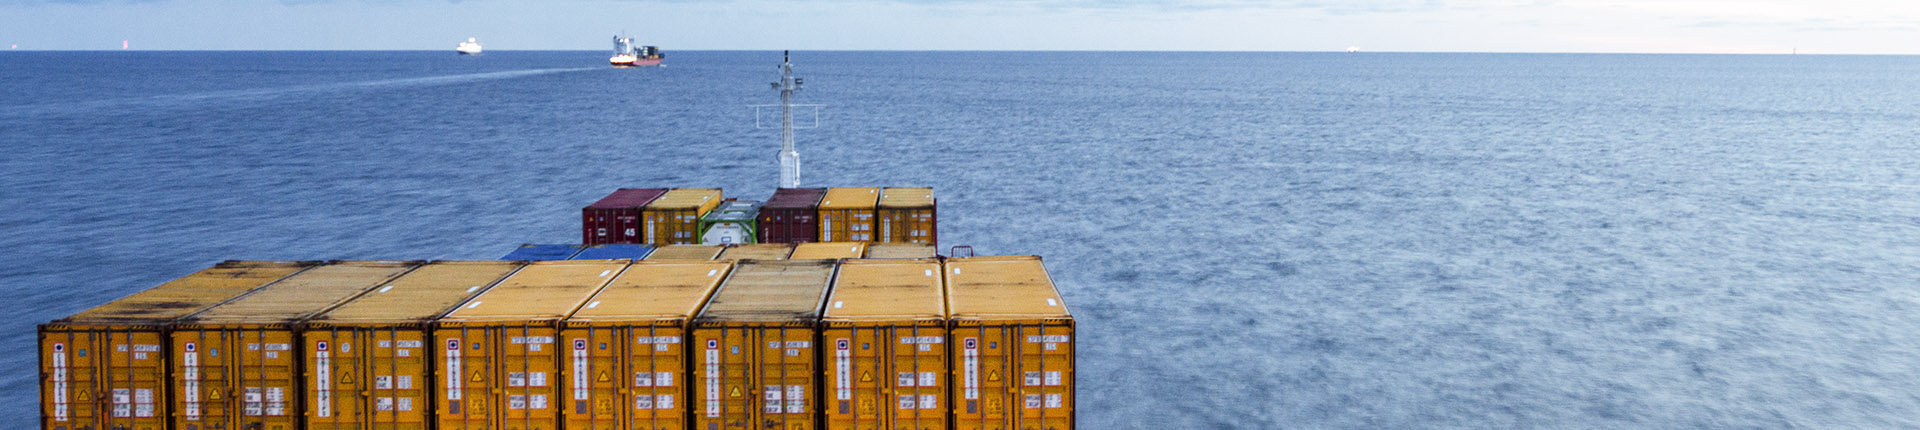 Vessel with containers on the sea